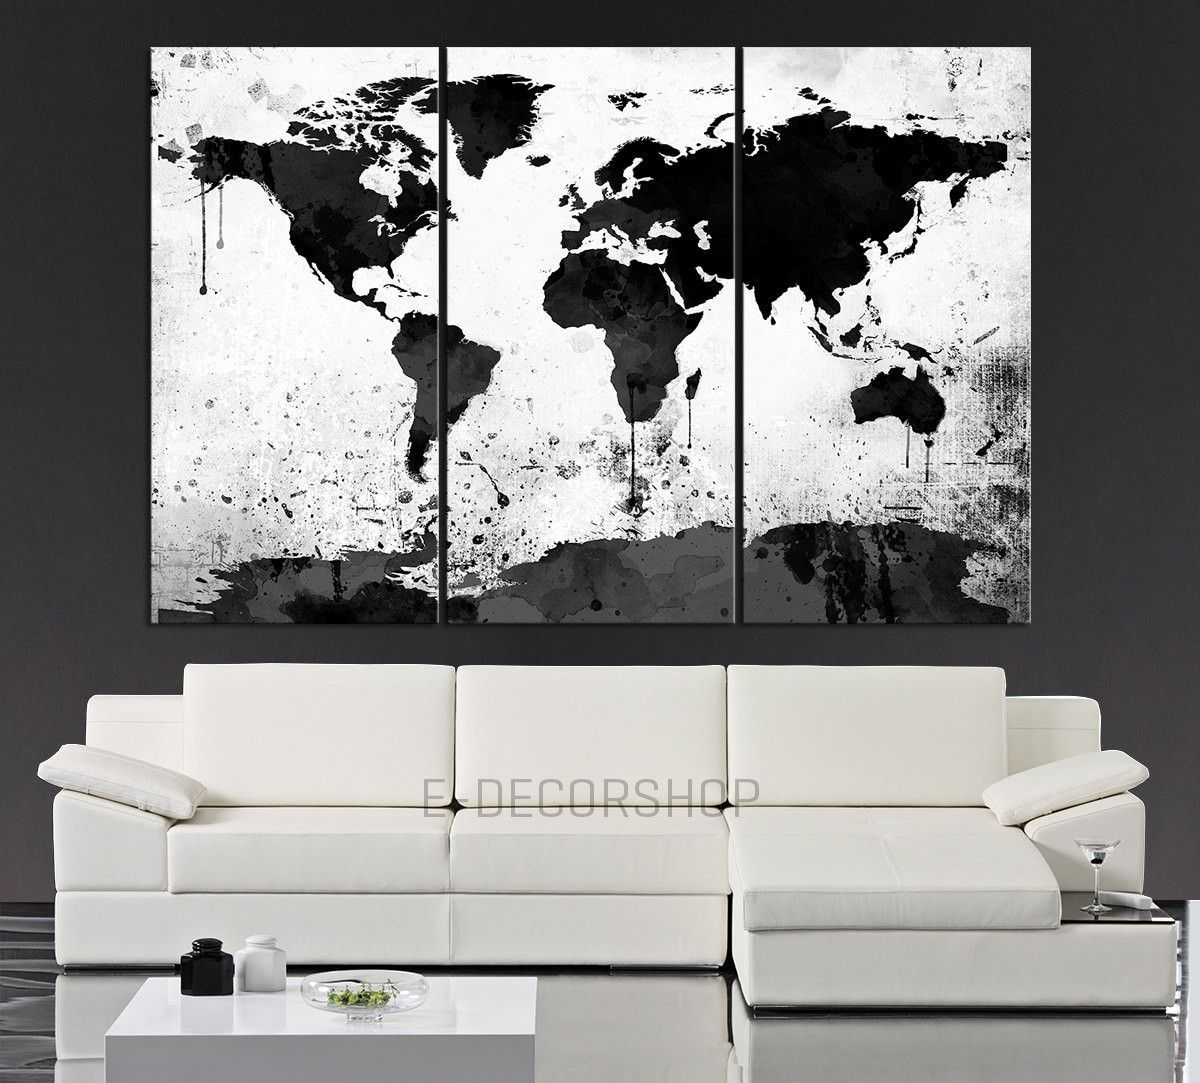 Large black white world map canvas print piece watercolor splash wall art mc also best images in moon rh pinterest